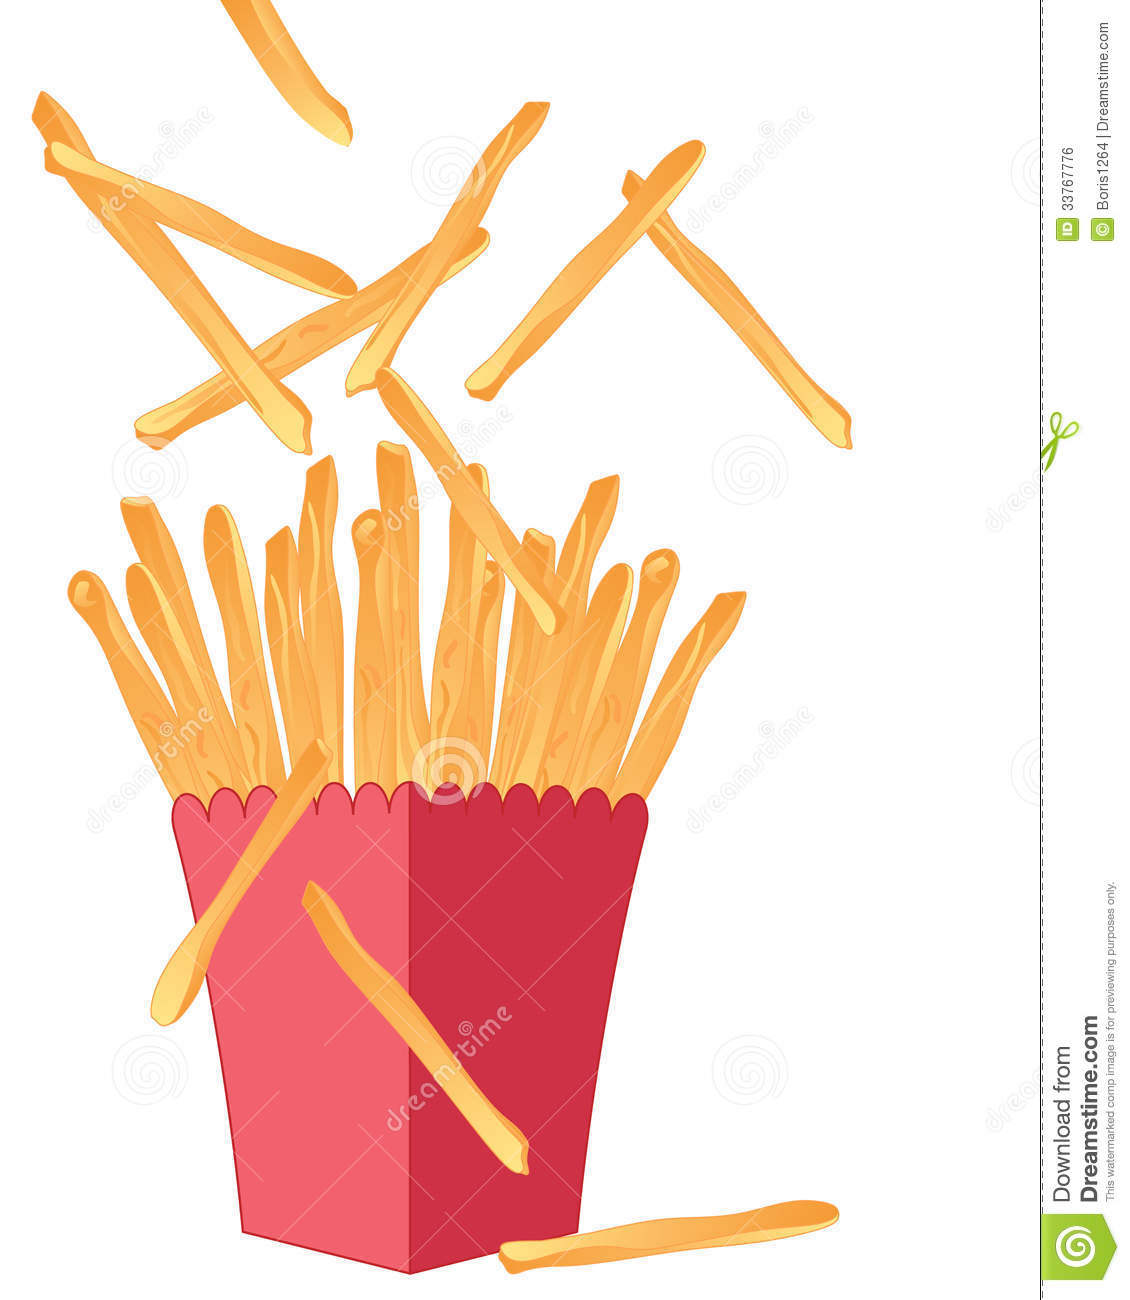 French Fries Royalty Free Stock Image.